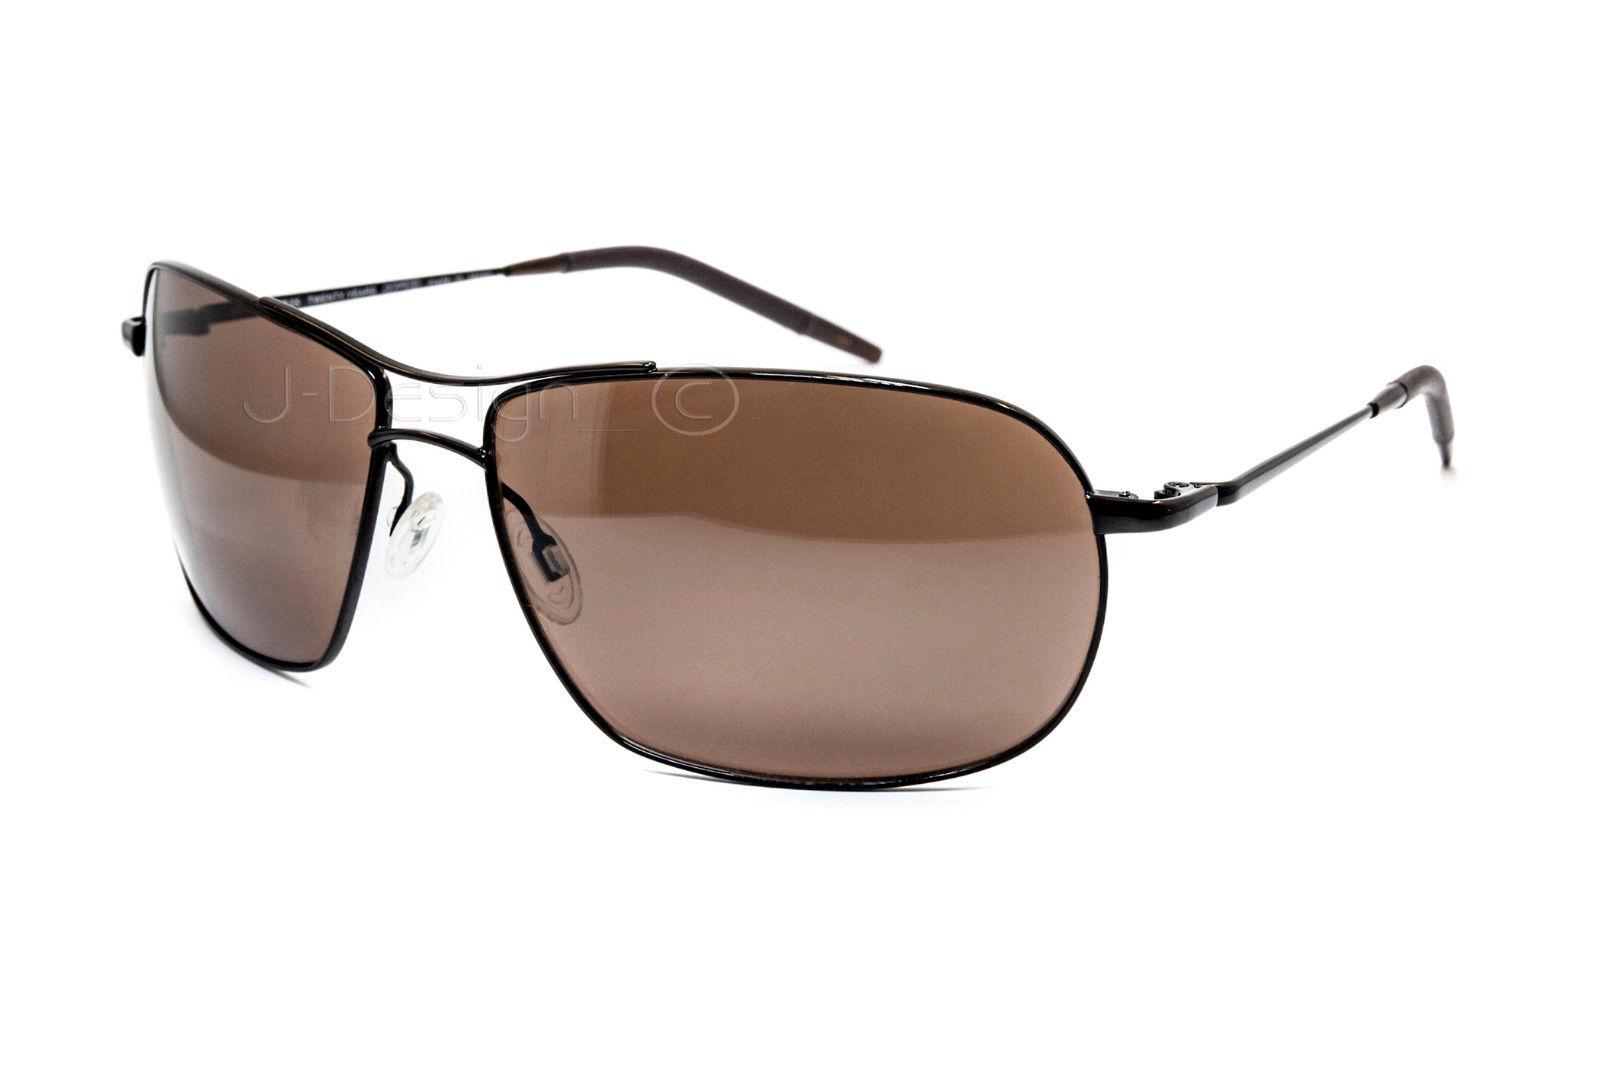 bab6248f1d Oliver Peoples FARRELL 62 Sunglasses